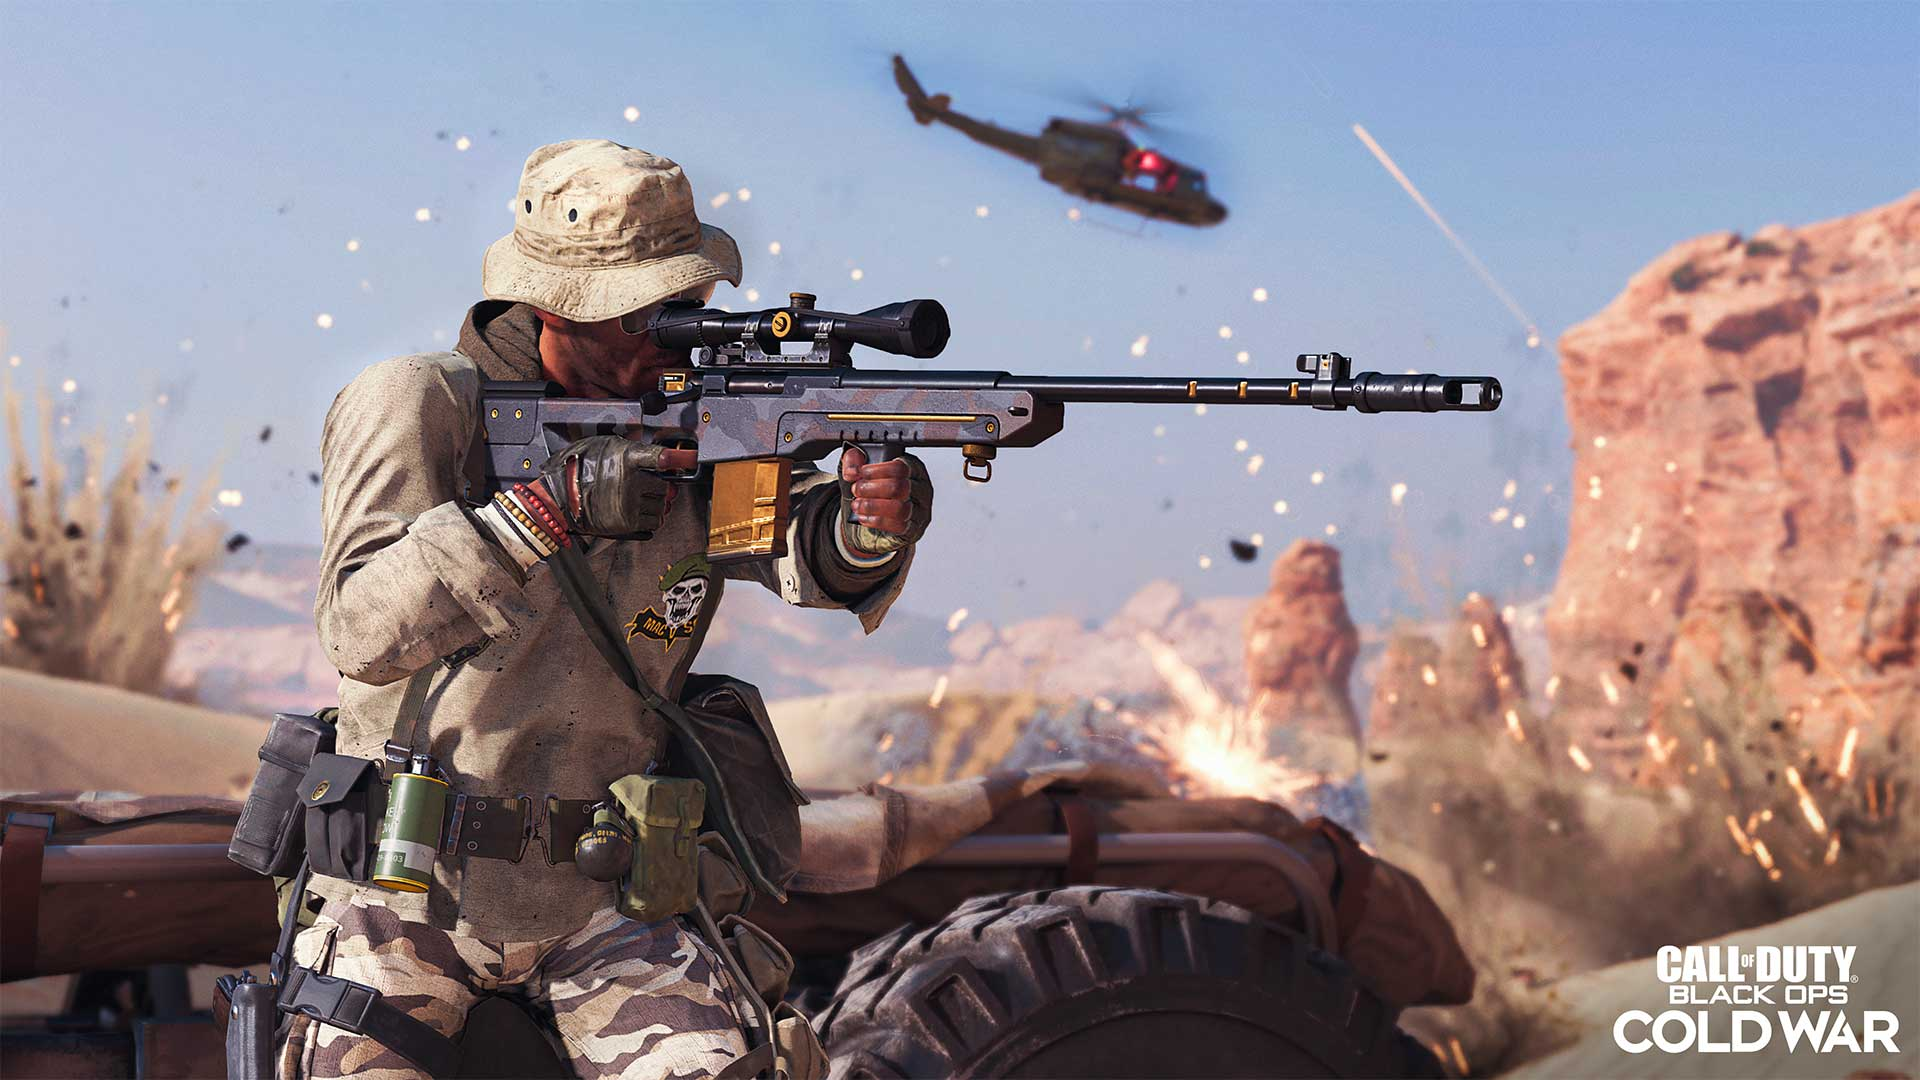 Call of Duty Warzone: New Season 1 helicopters removed from the game